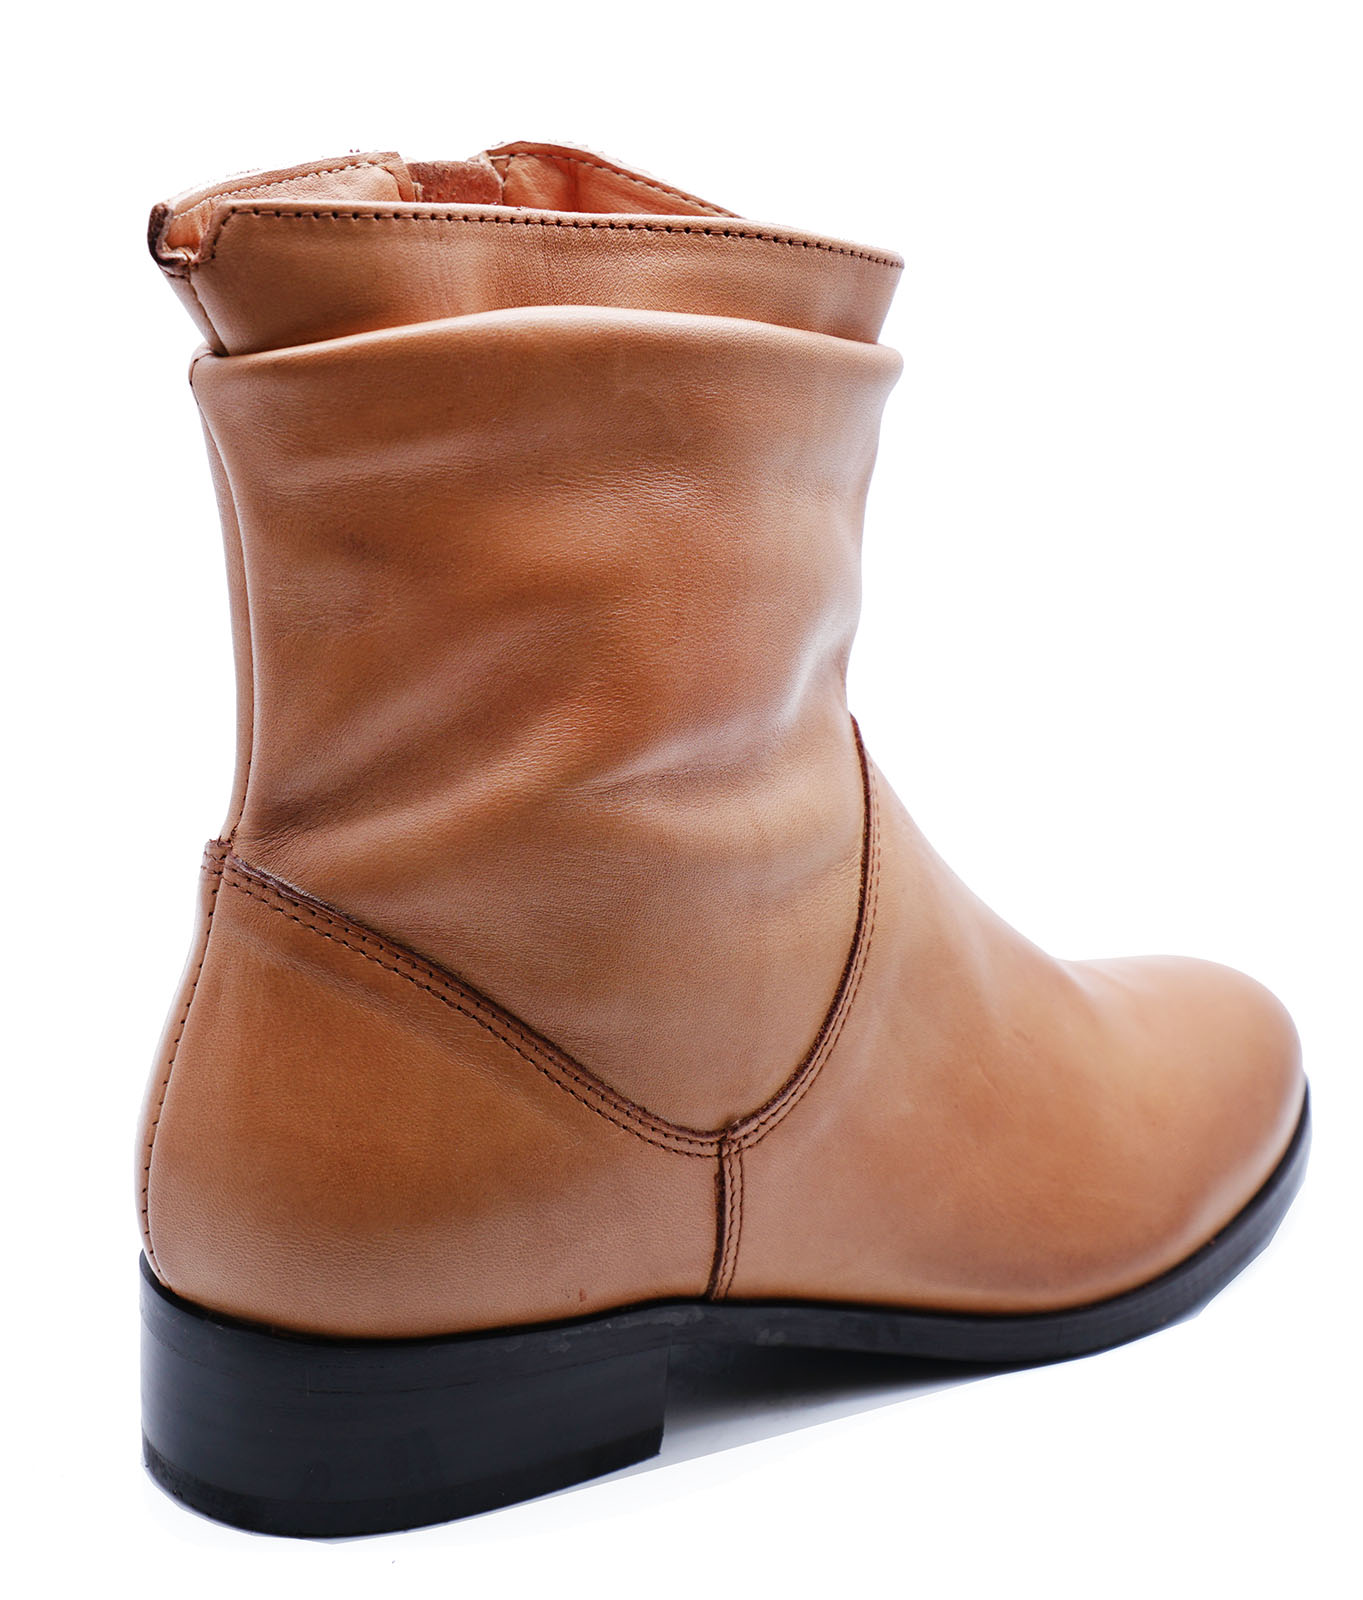 LADIES-FLAT-GENUINE-LEATHER-TAN-ZIP-UP-ANKLE-CALF-BOOTS-COMFY-SHOES-SIZES-2-9 thumbnail 19